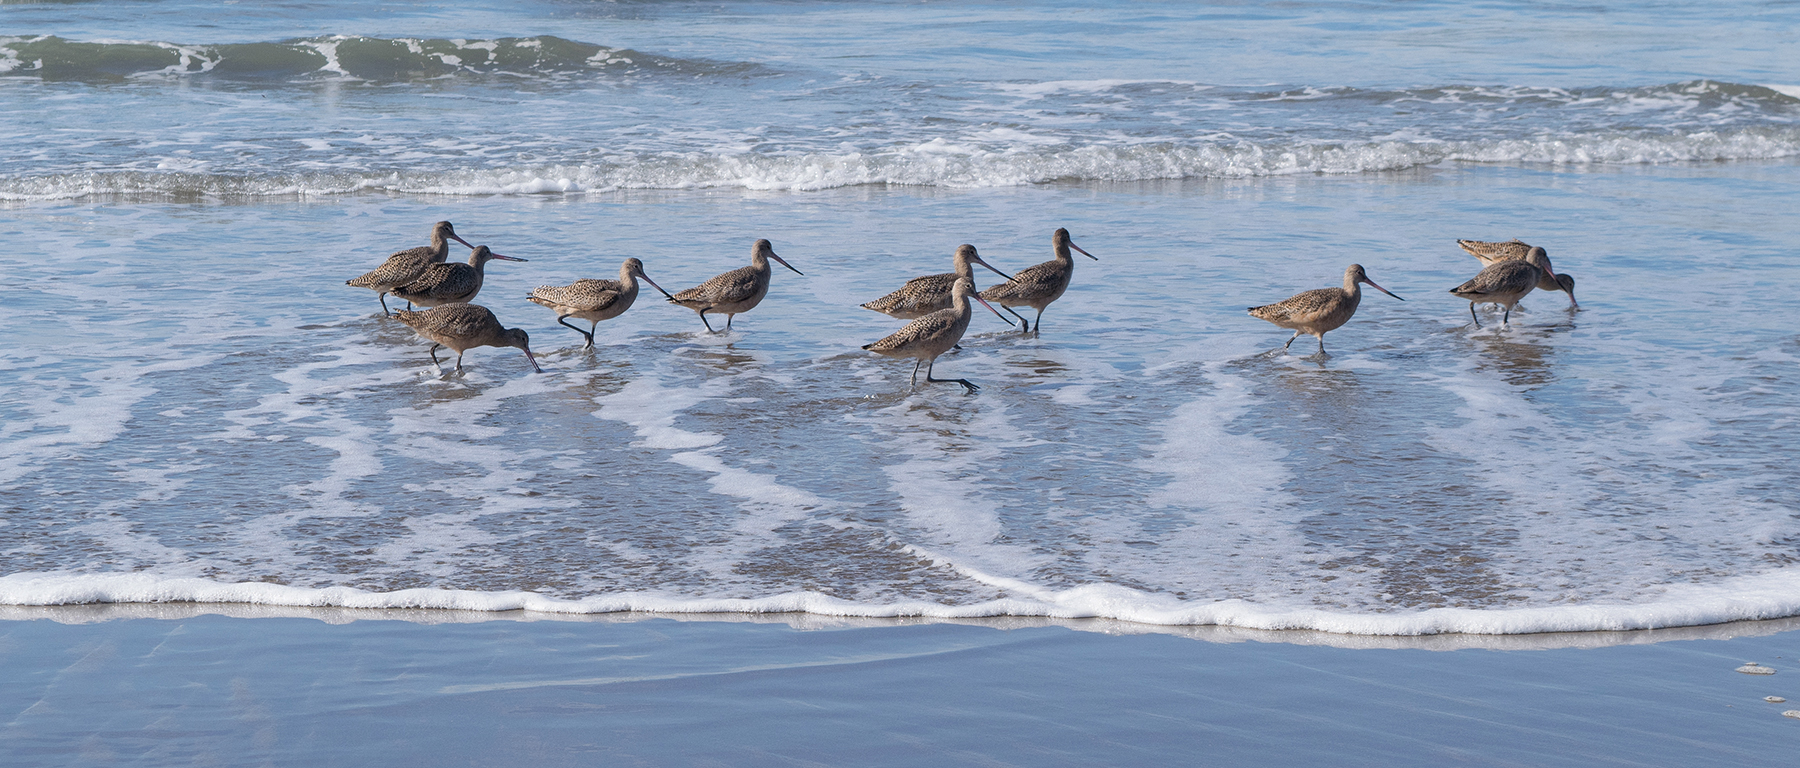 shorebirds wading in waves